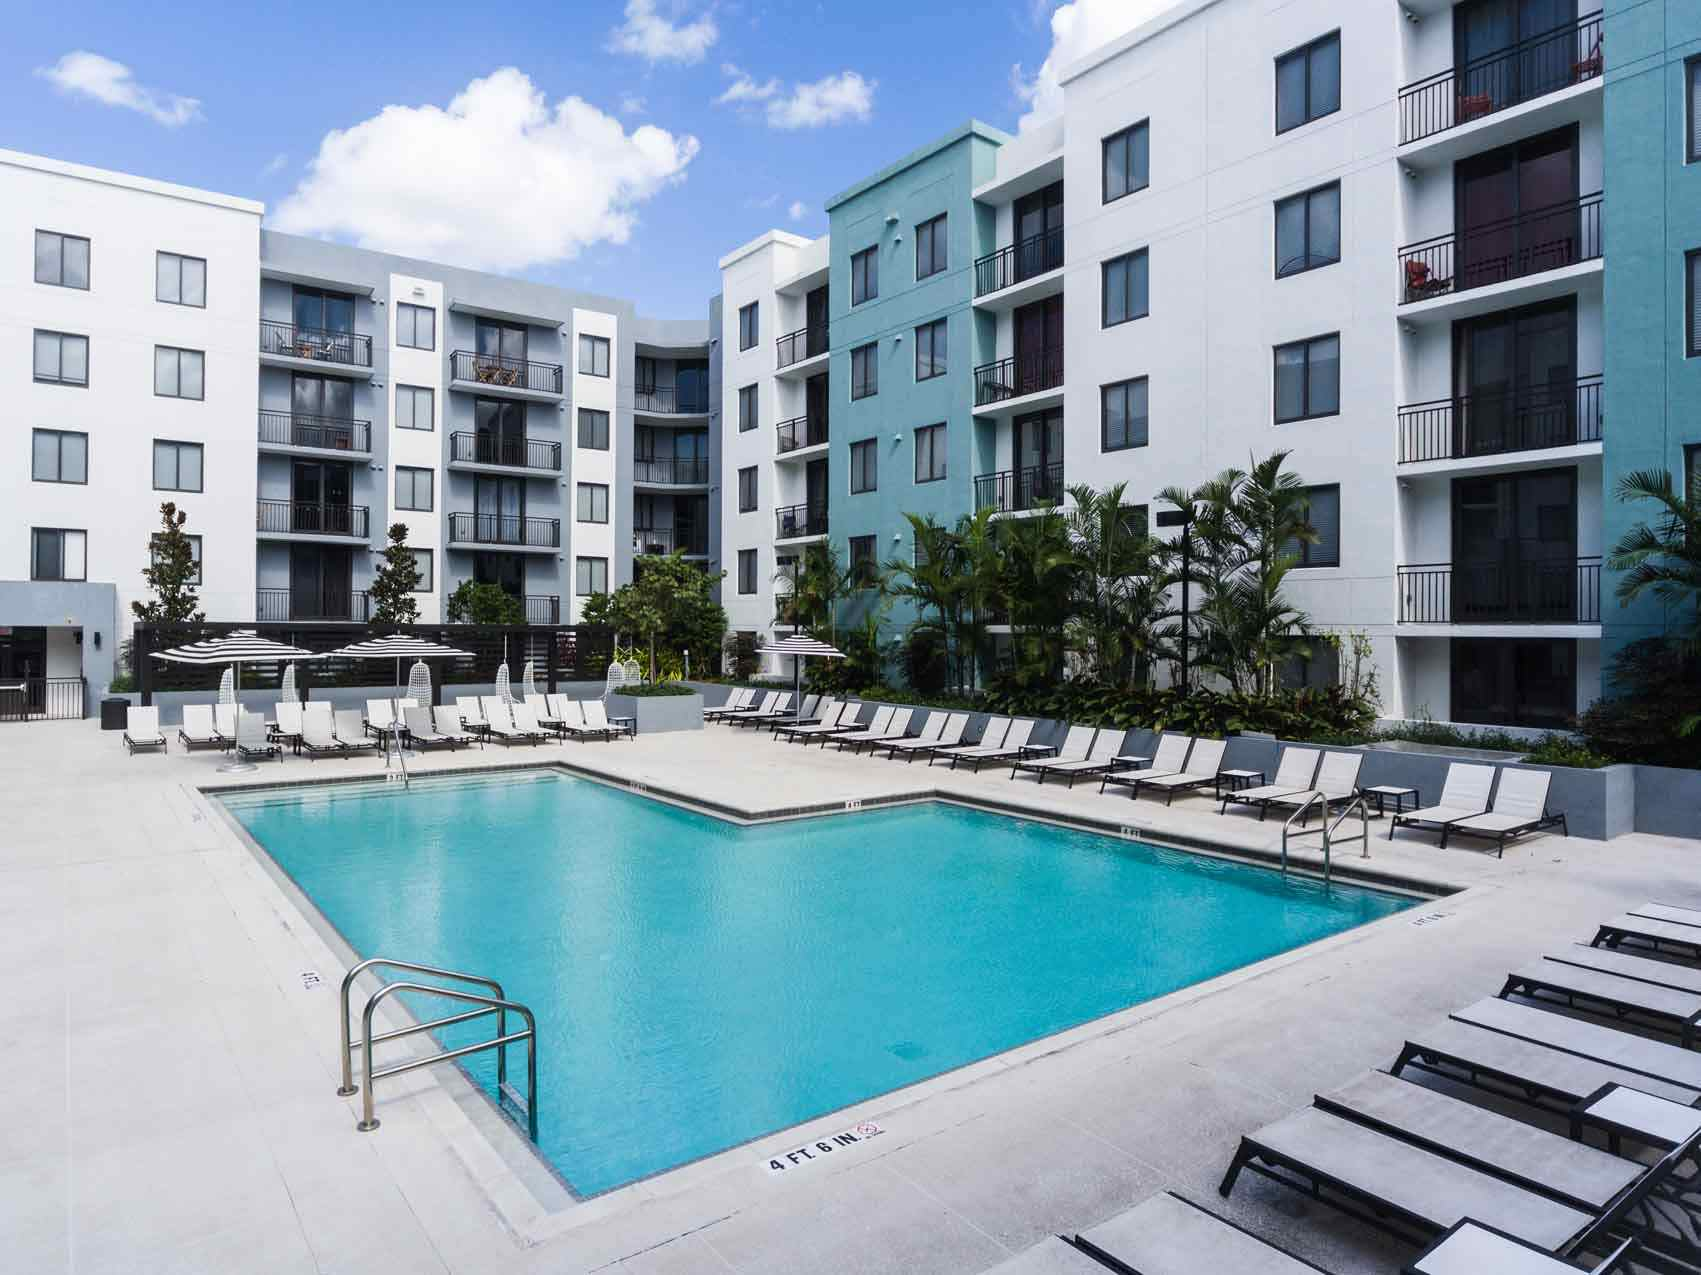 4th-Street-Commons-Miami-Poolside2-Unilodgers